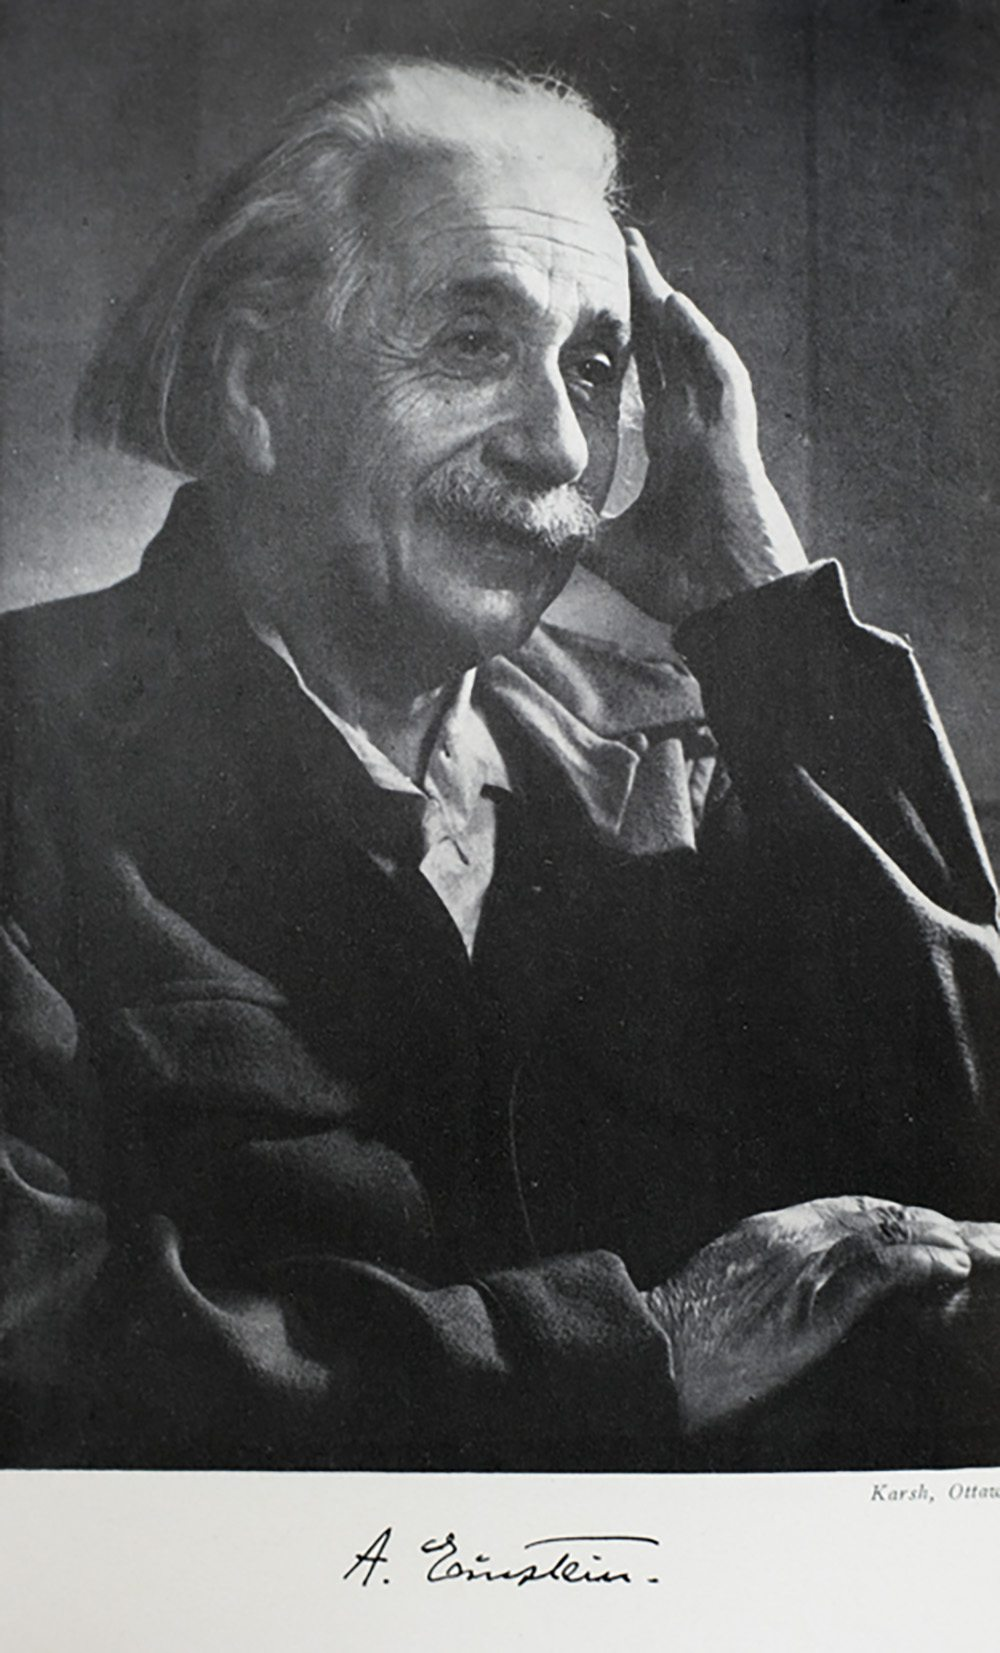 a biography of albert einstein the scientist Fascinating facts about albert einstein, perhaps the most well-known scientist of the 20th century.